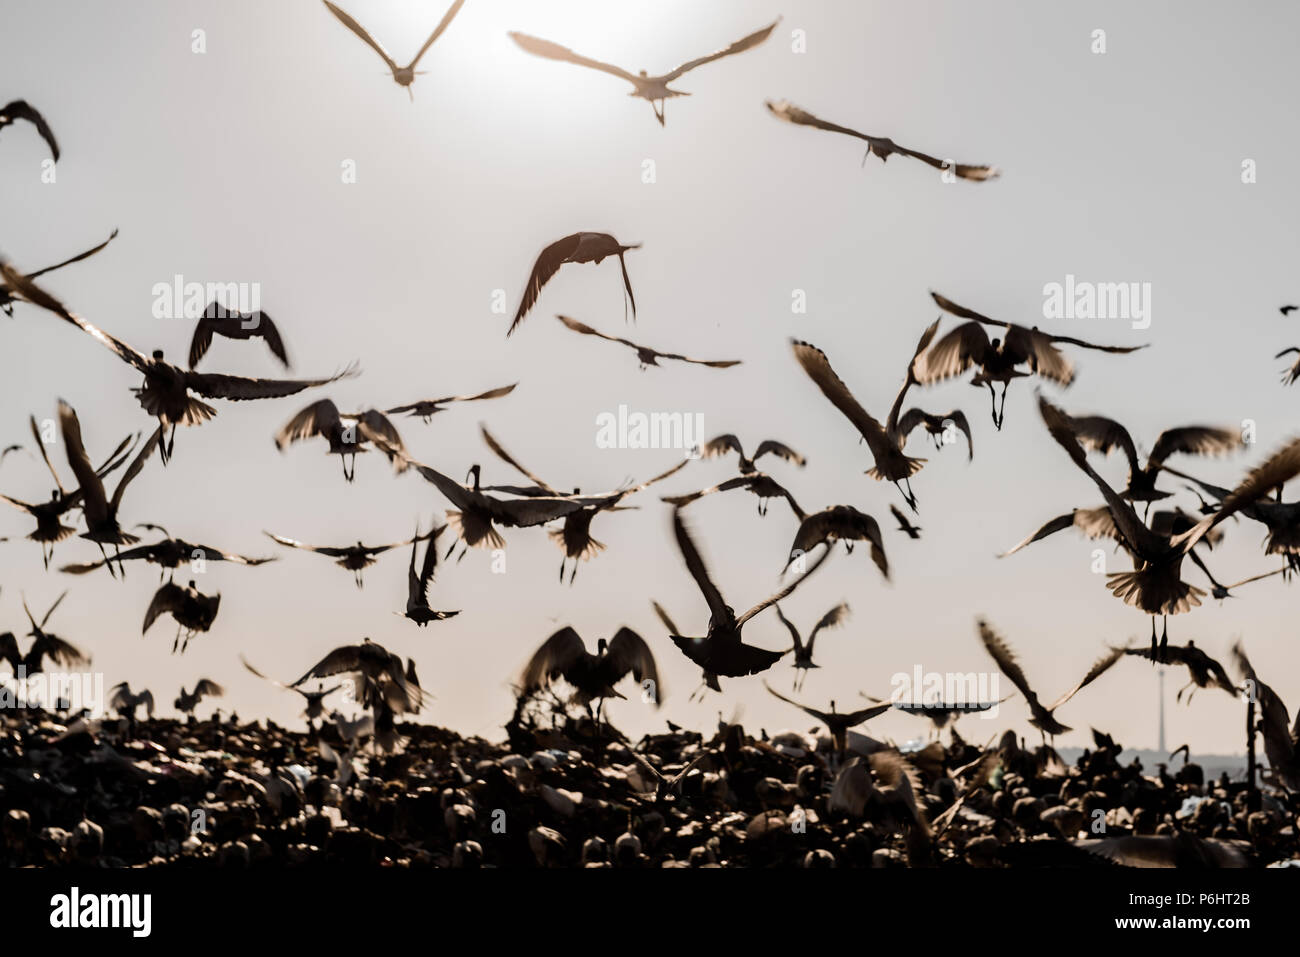 Sacred Ibis foraging on the Robinson Deep landfill in the South African commercial capital of Johannesburg - Stock Image